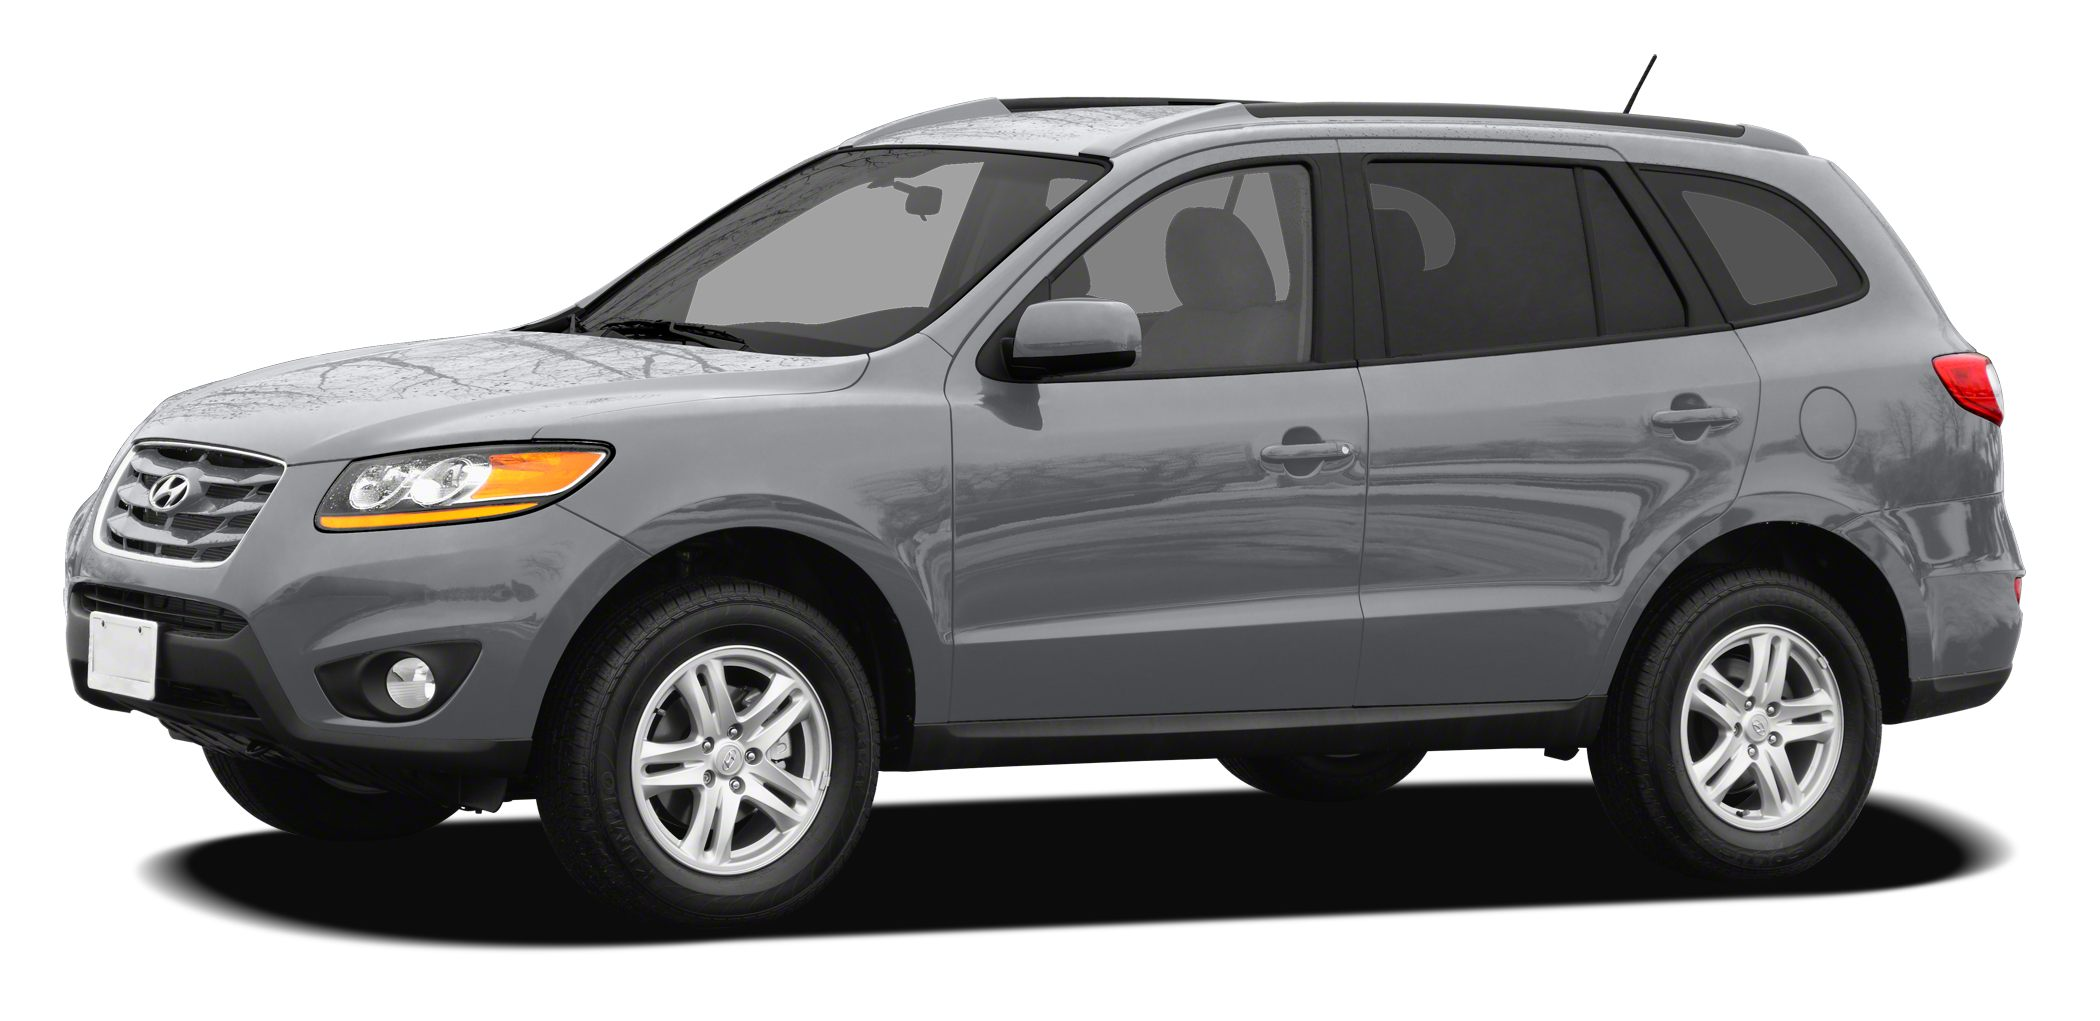 2011 Hyundai Santa Fe Limited Lifetime Engine Warranty at NO CHARGE on all pre-owned vehicles Cour